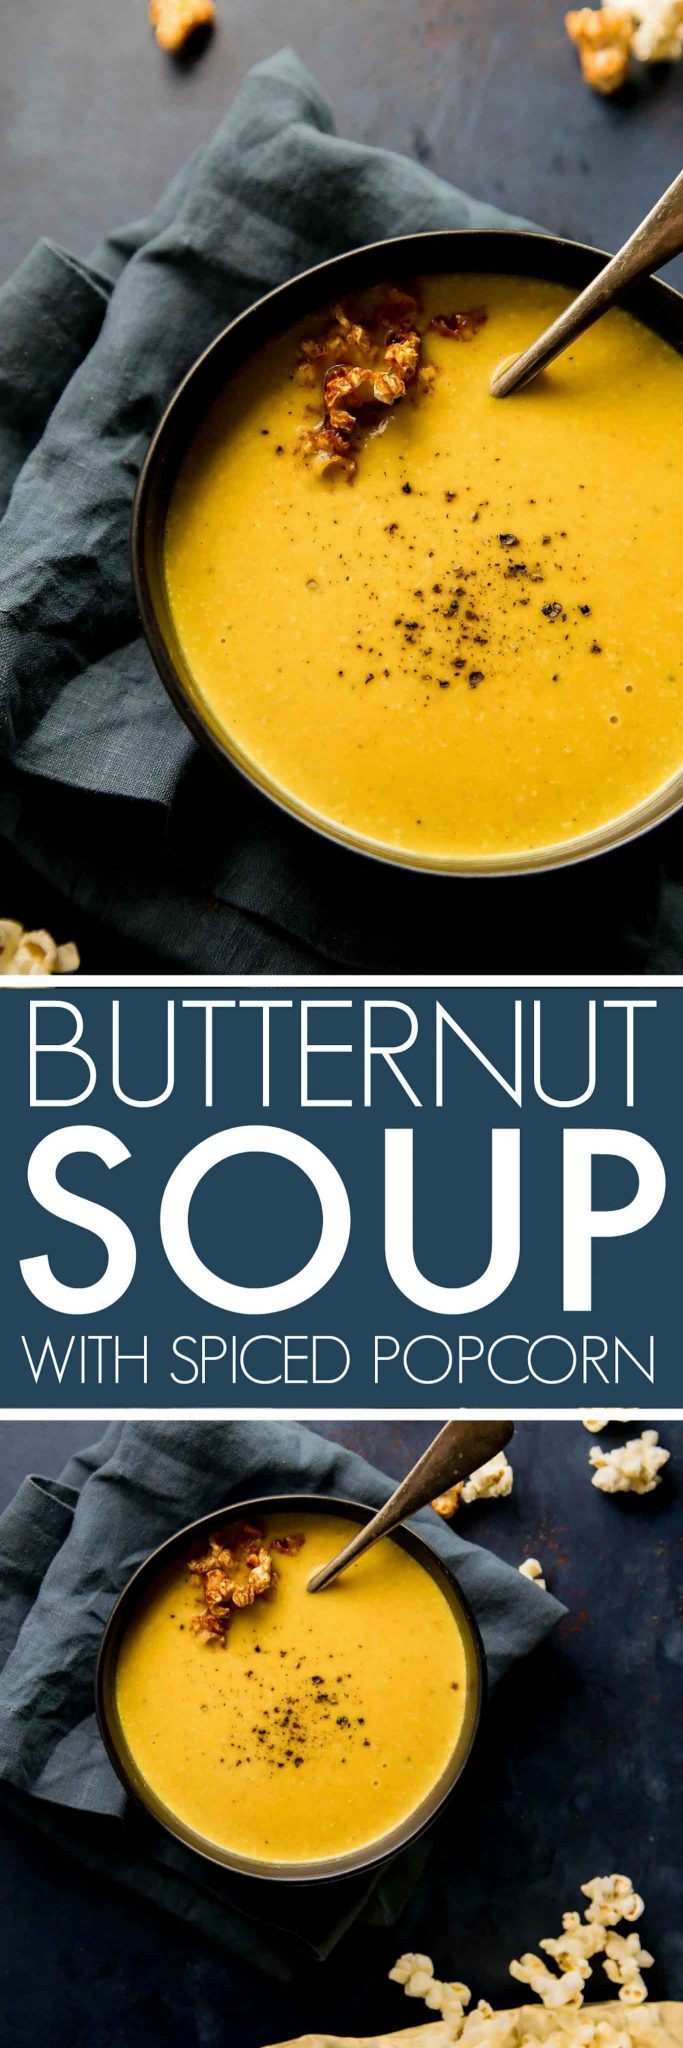 This Curried Butternut Squash Soup, topped with smoked paprika spiced popcorn, is perfect for chilly fall days. | platingsandpairings.com #soup #butternutsquashsoup #butternutsoup